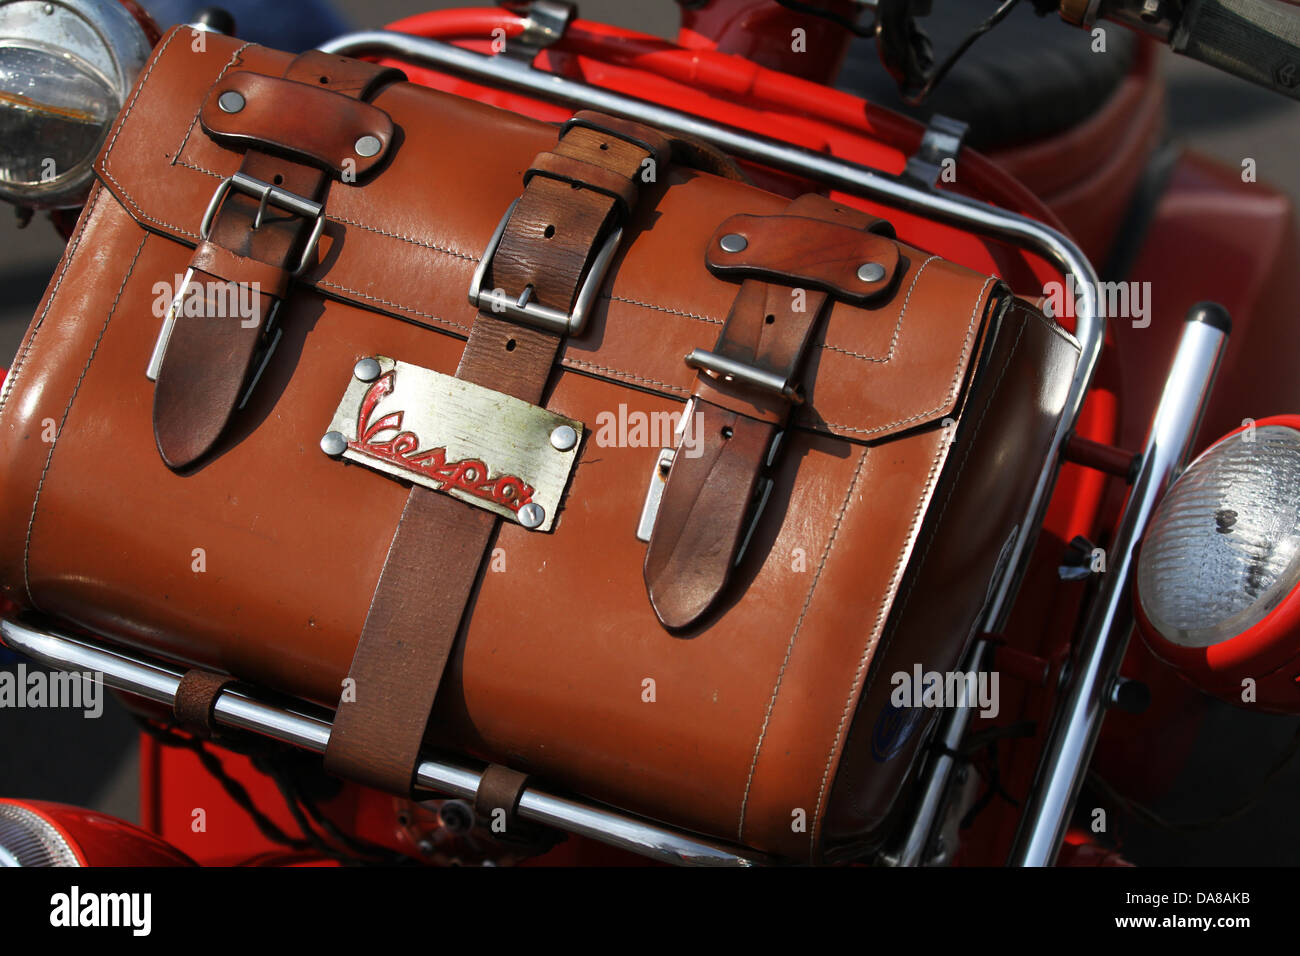 Vespa Scooter Italian Mod Style Culture Original 1960s Motor Scooter Luggage from Italy - Stock Image